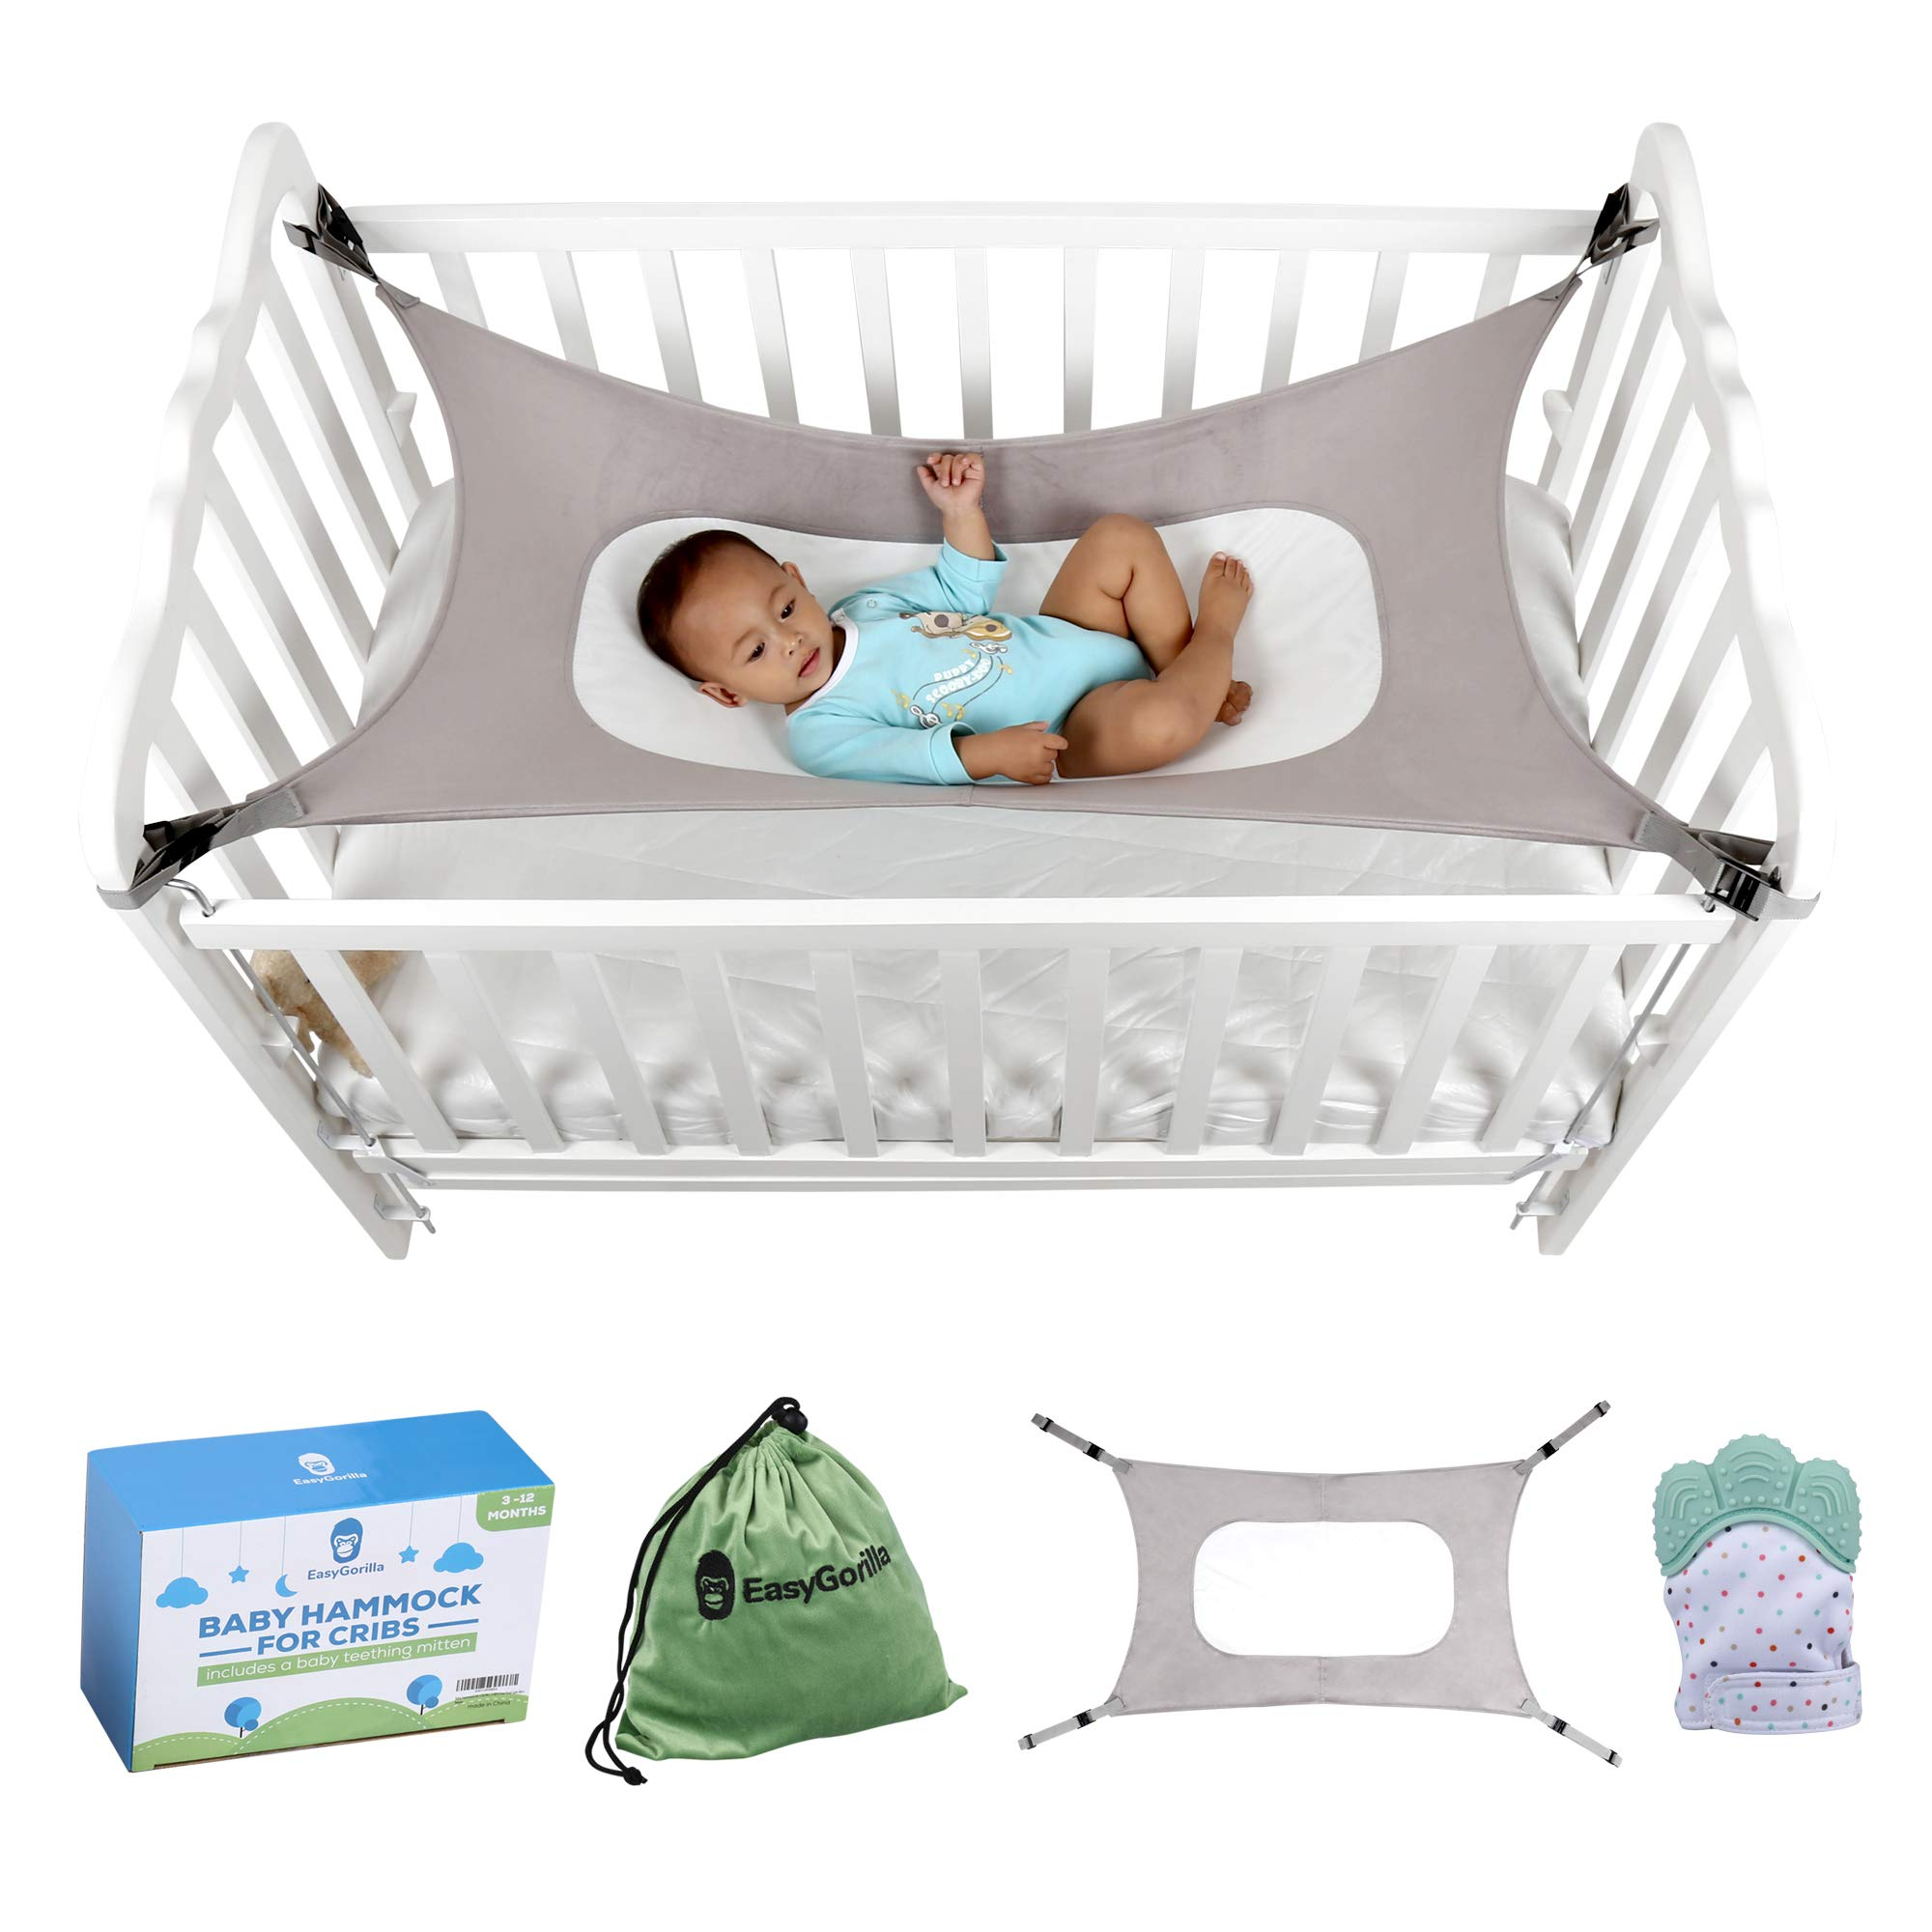 Baby Crib Hammock by Easy Gorilla - Newborn Bed Sleeping Essentials for Boys and Girls - Breathable and Portable - Infant Sleep Comfort Gifts for Indoor Cot - Cradle - Safety Mesh Nursery Nap Hammocks by EasyGorilla (Image #1)